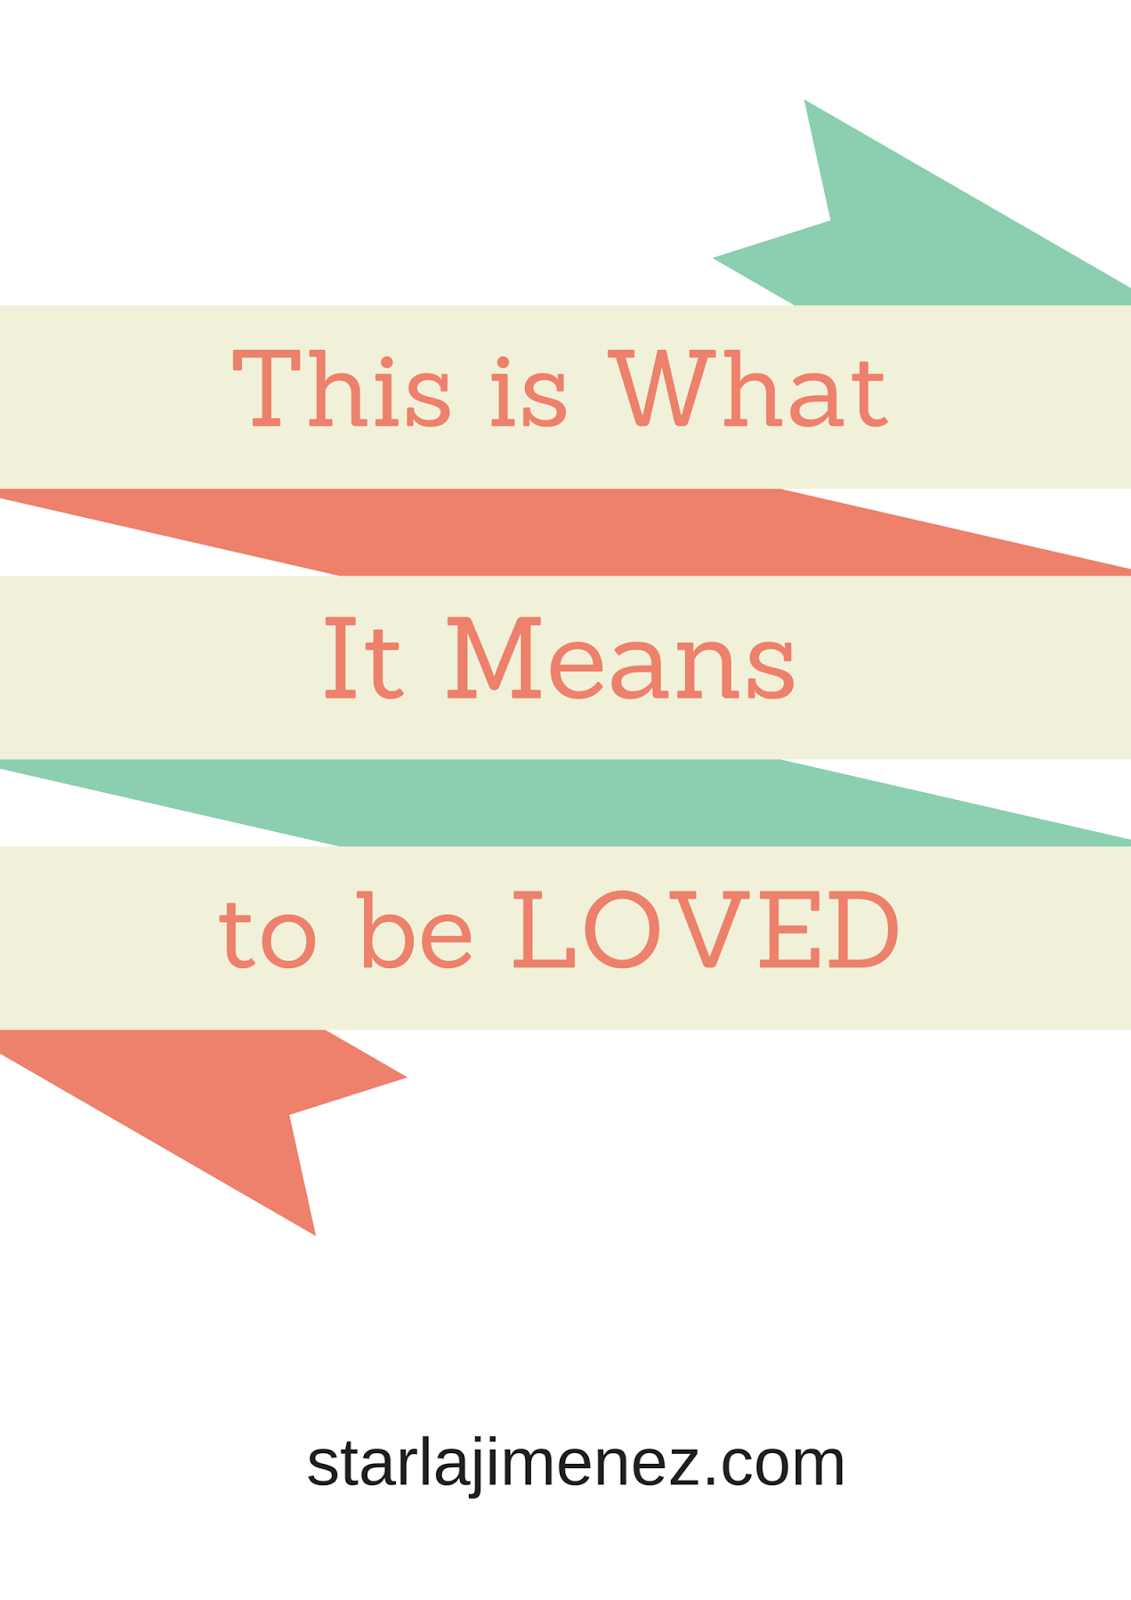 This is What It Means to be Loved by Jesus.